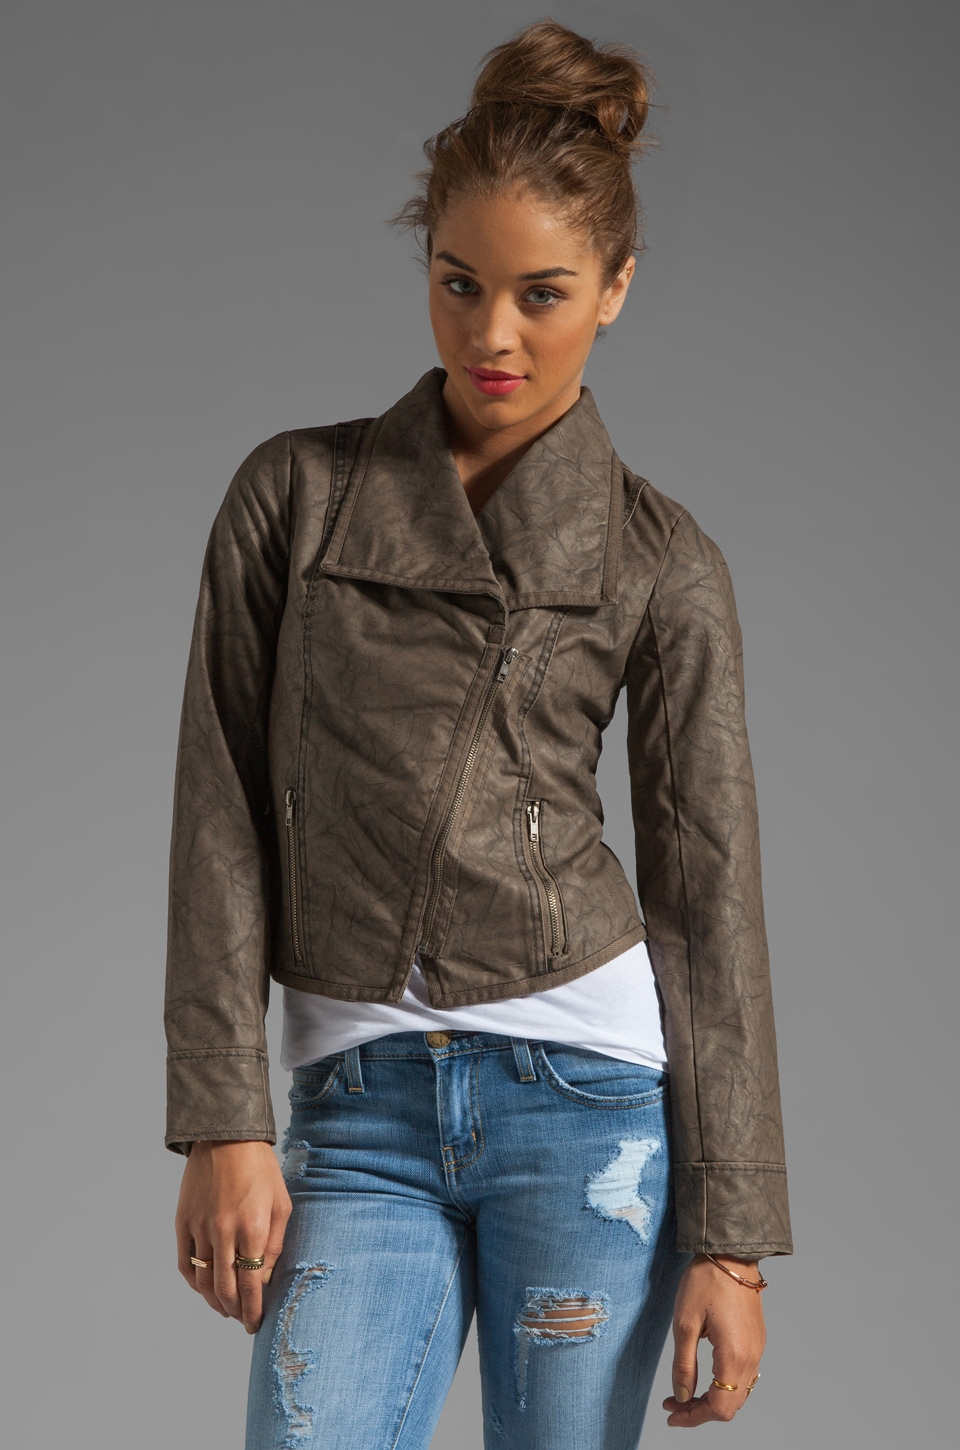 BB Dakota Sandler 2 Tone Crinkle Faux Leather Jacket in Concrete